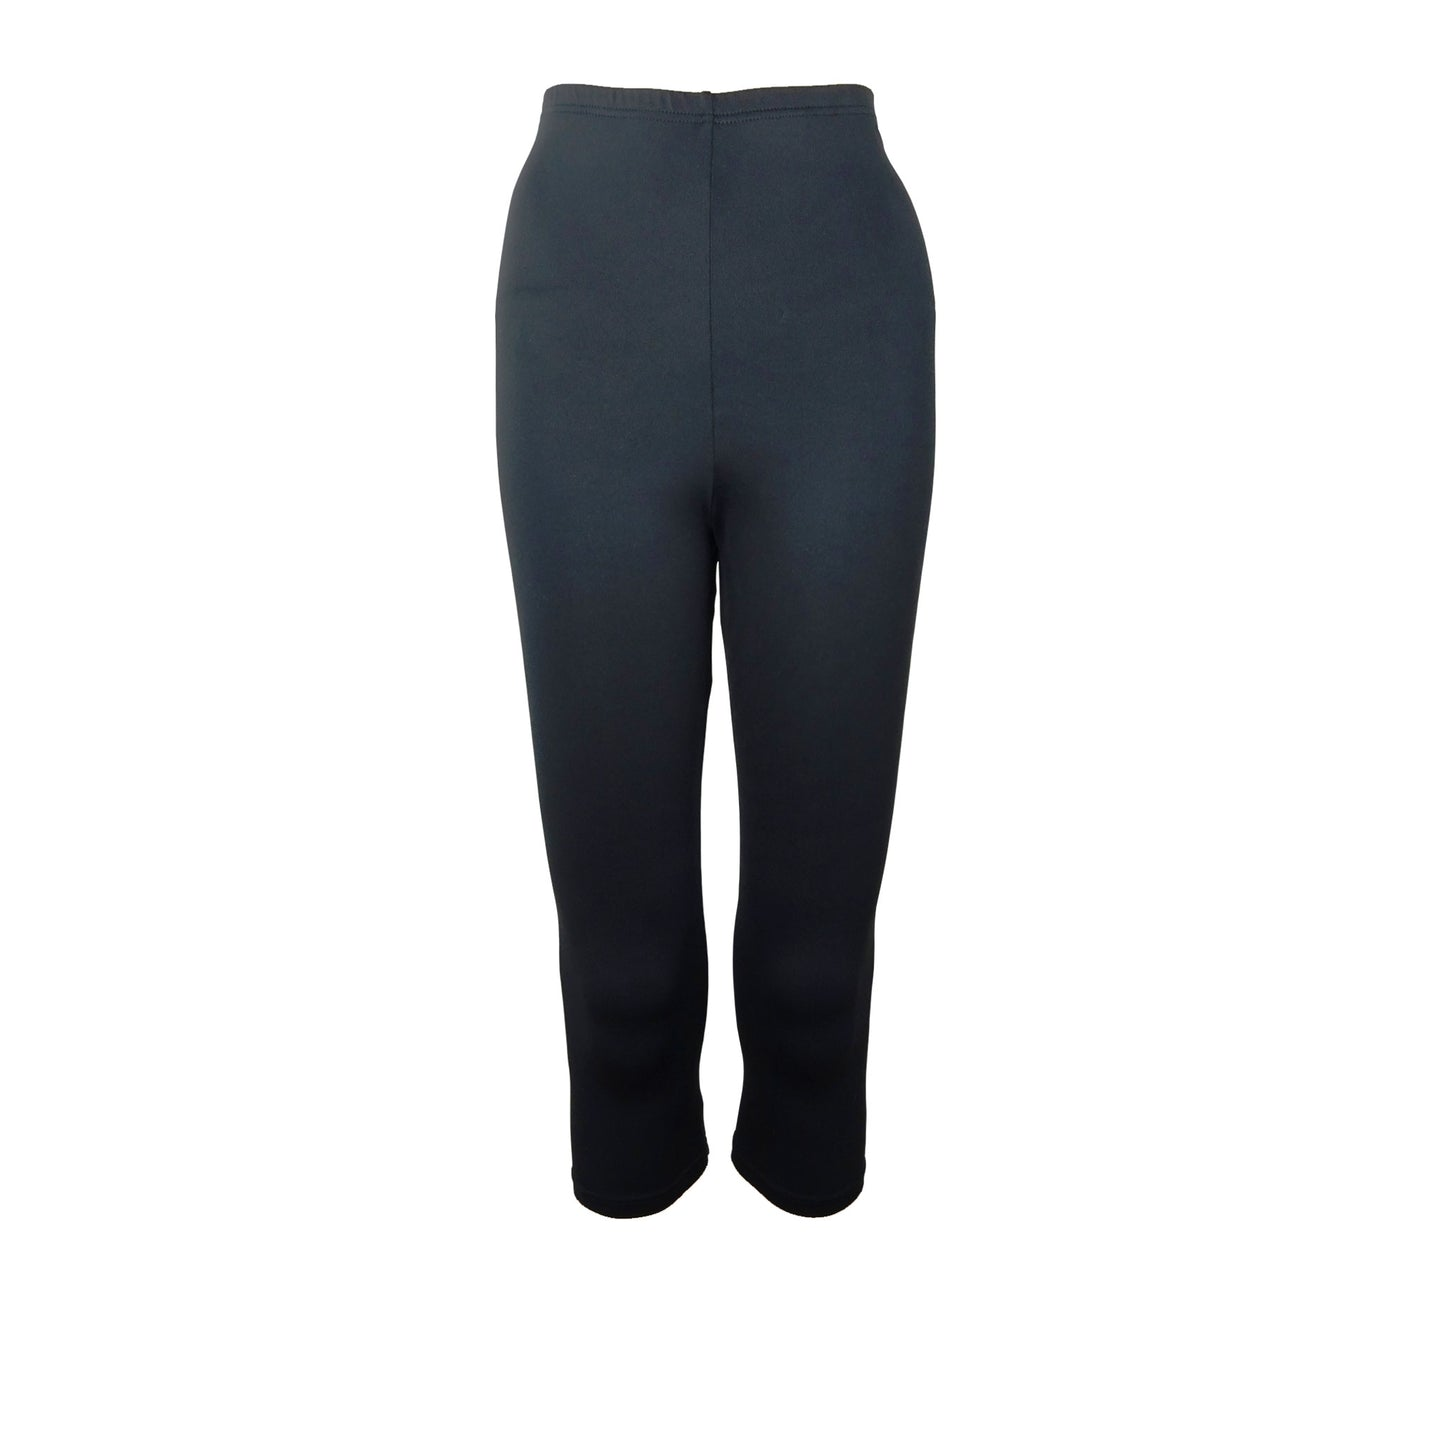 Crop Leggings for Adult Ballet, Dance & Fitness Wear - from Bella Barre